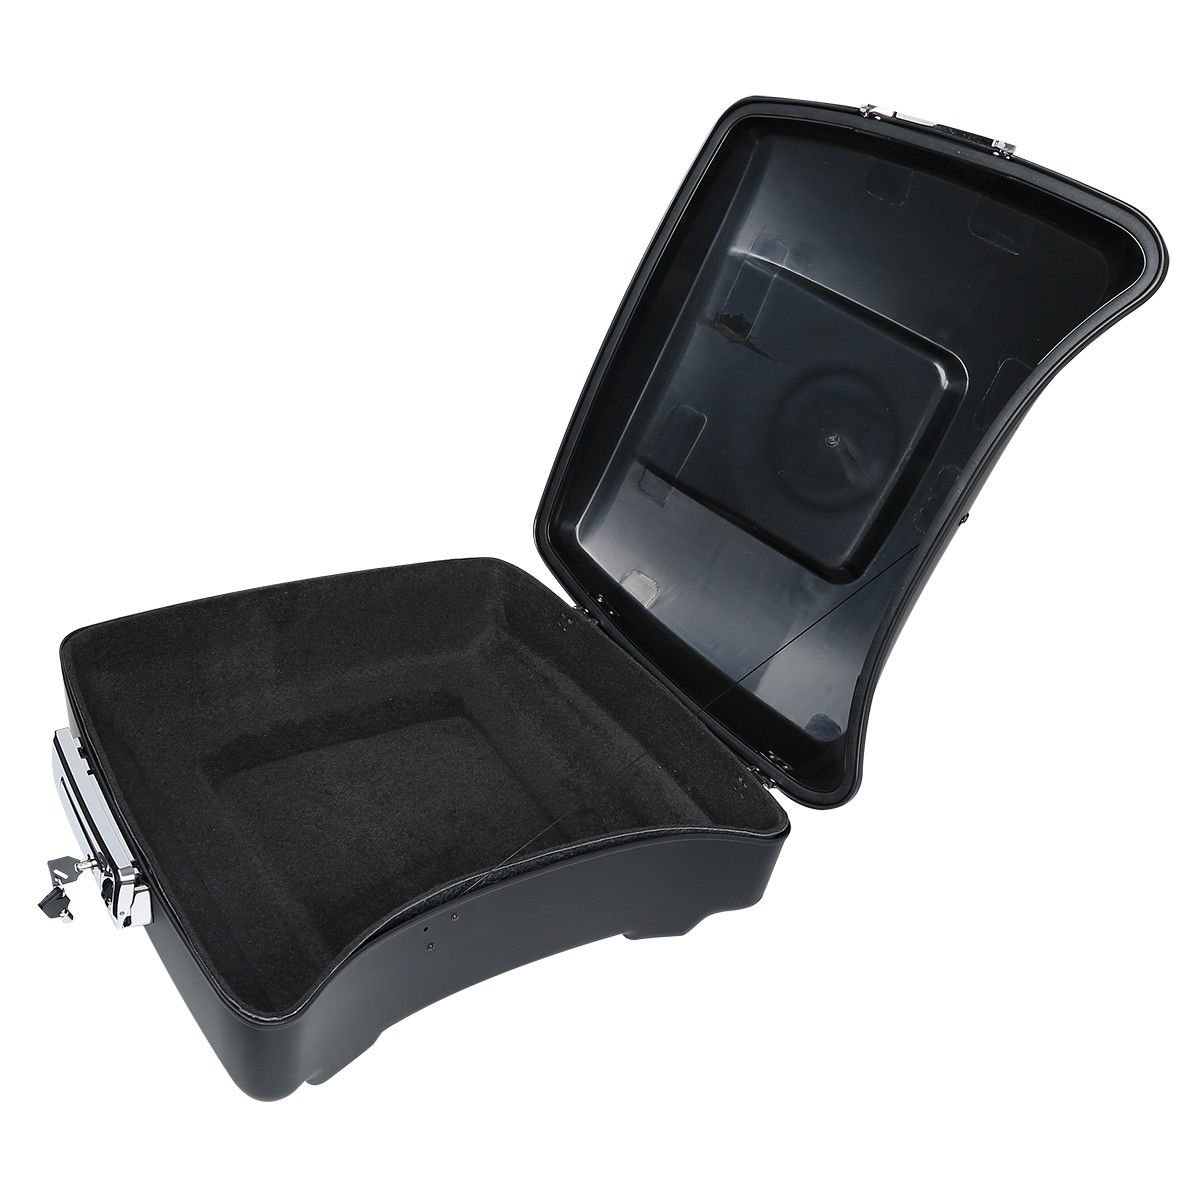 XFMT 10.7 Chopped Tour Pak Pack Trunk W//Latch Compatible with Harley Street Road Glide 2014-19